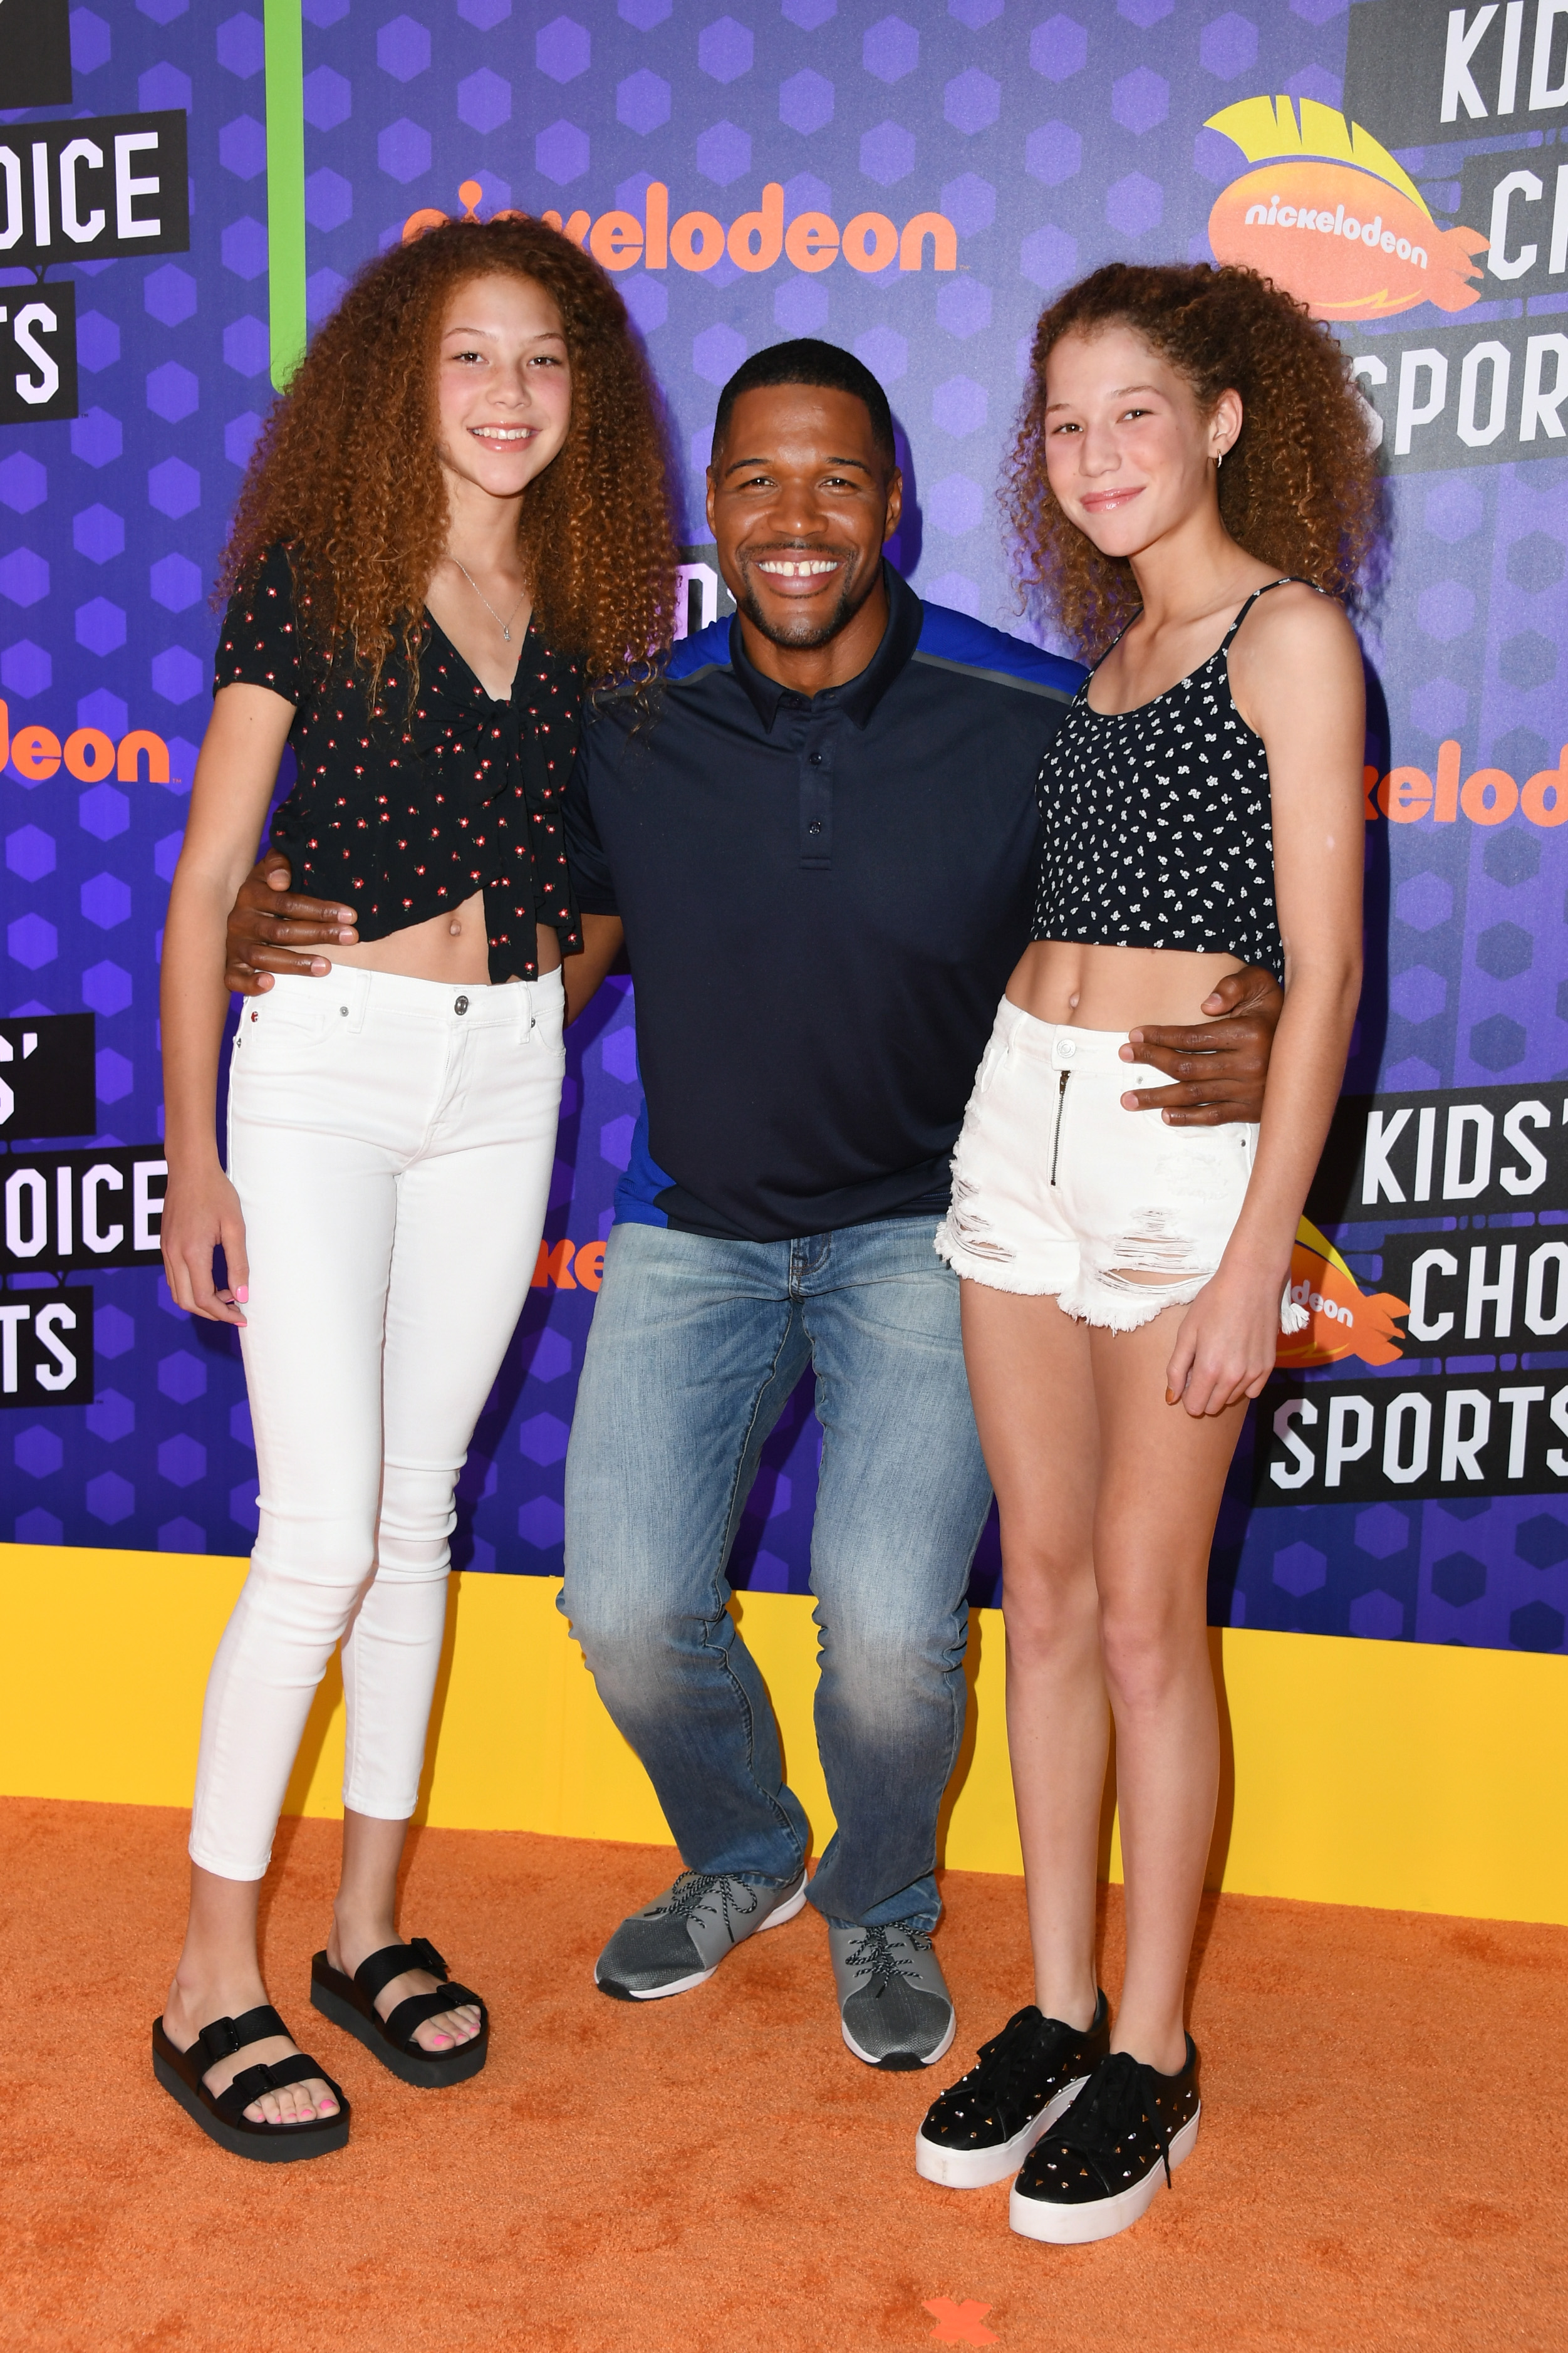 Isabella Strahan, Michael Strahan Sophia Strahan. Image Credit: Getty Images